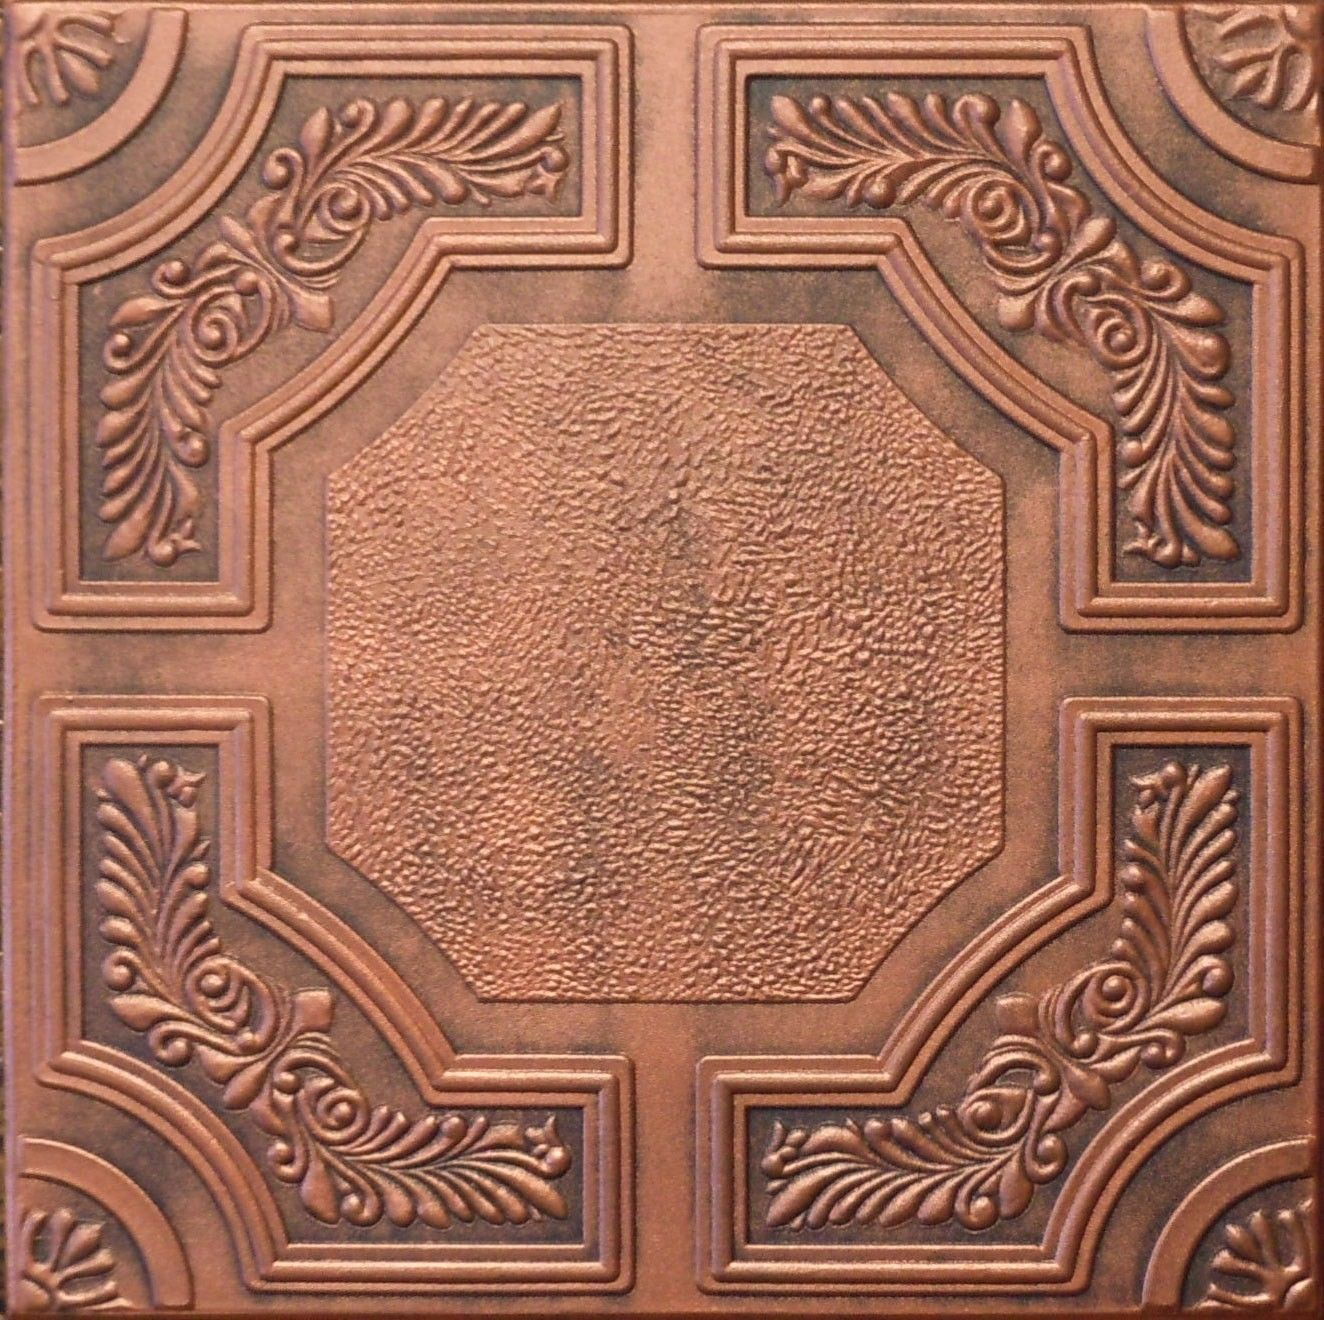 Tin look faux ceiling tiles 20x20 different colors ebay tin look faux ceiling tiles 20x20 different colors ebay doublecrazyfo Image collections